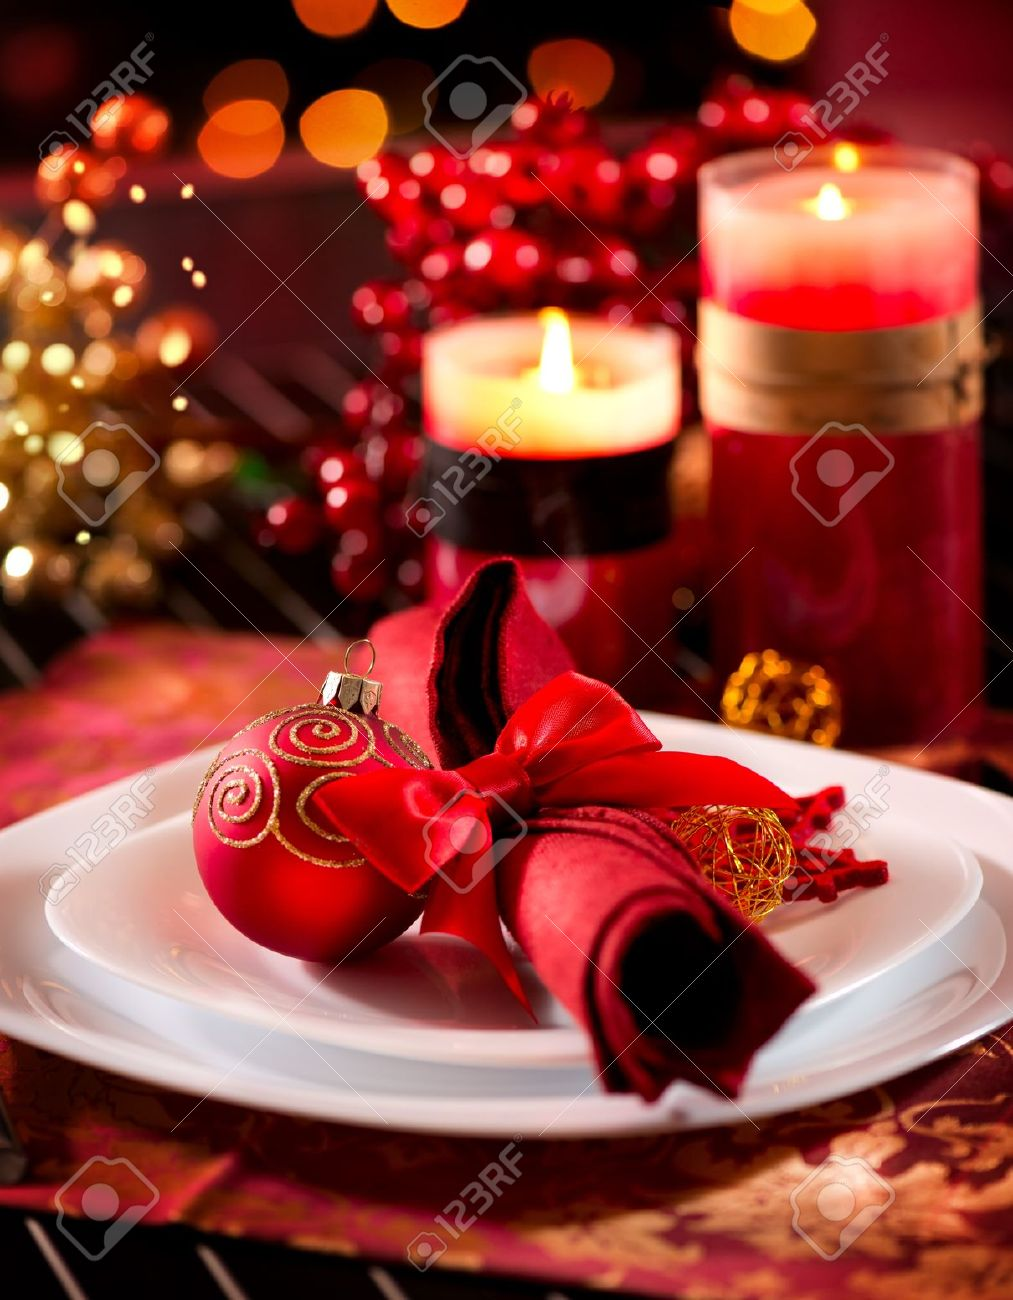 Christmas Table Setting Holiday Decorations Stock Photo - 16825521 & Christmas Table Setting Holiday Decorations Stock Photo Picture And ...